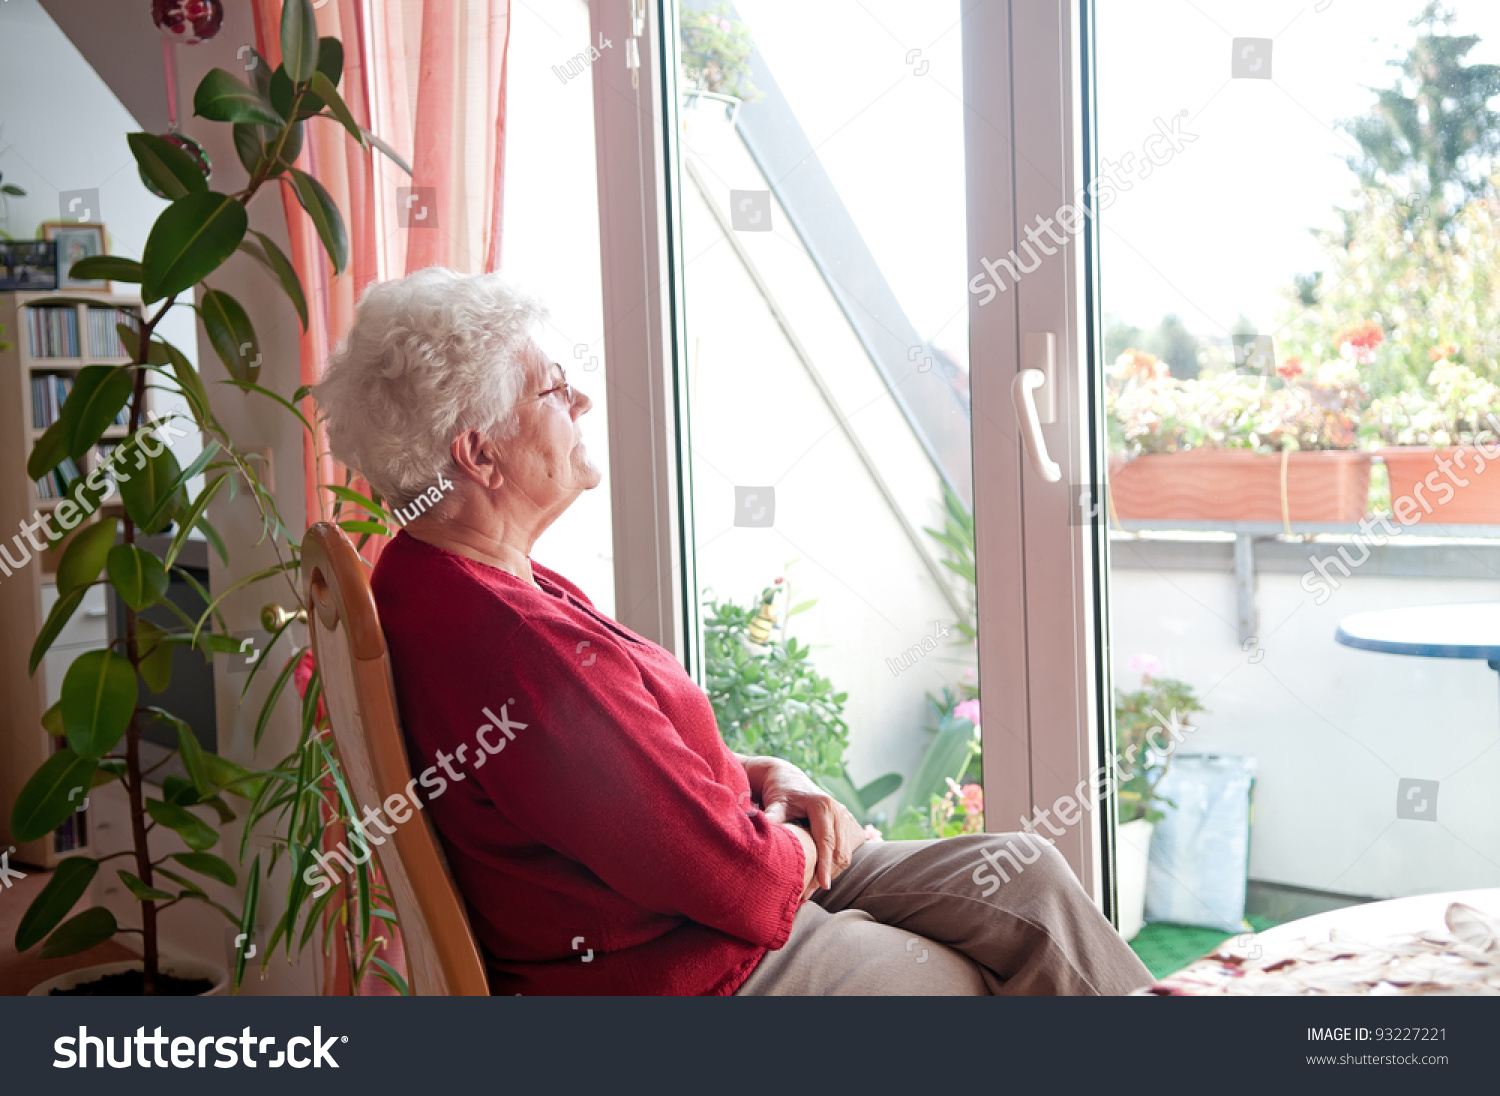 lonely old woman looks out the window #93227221